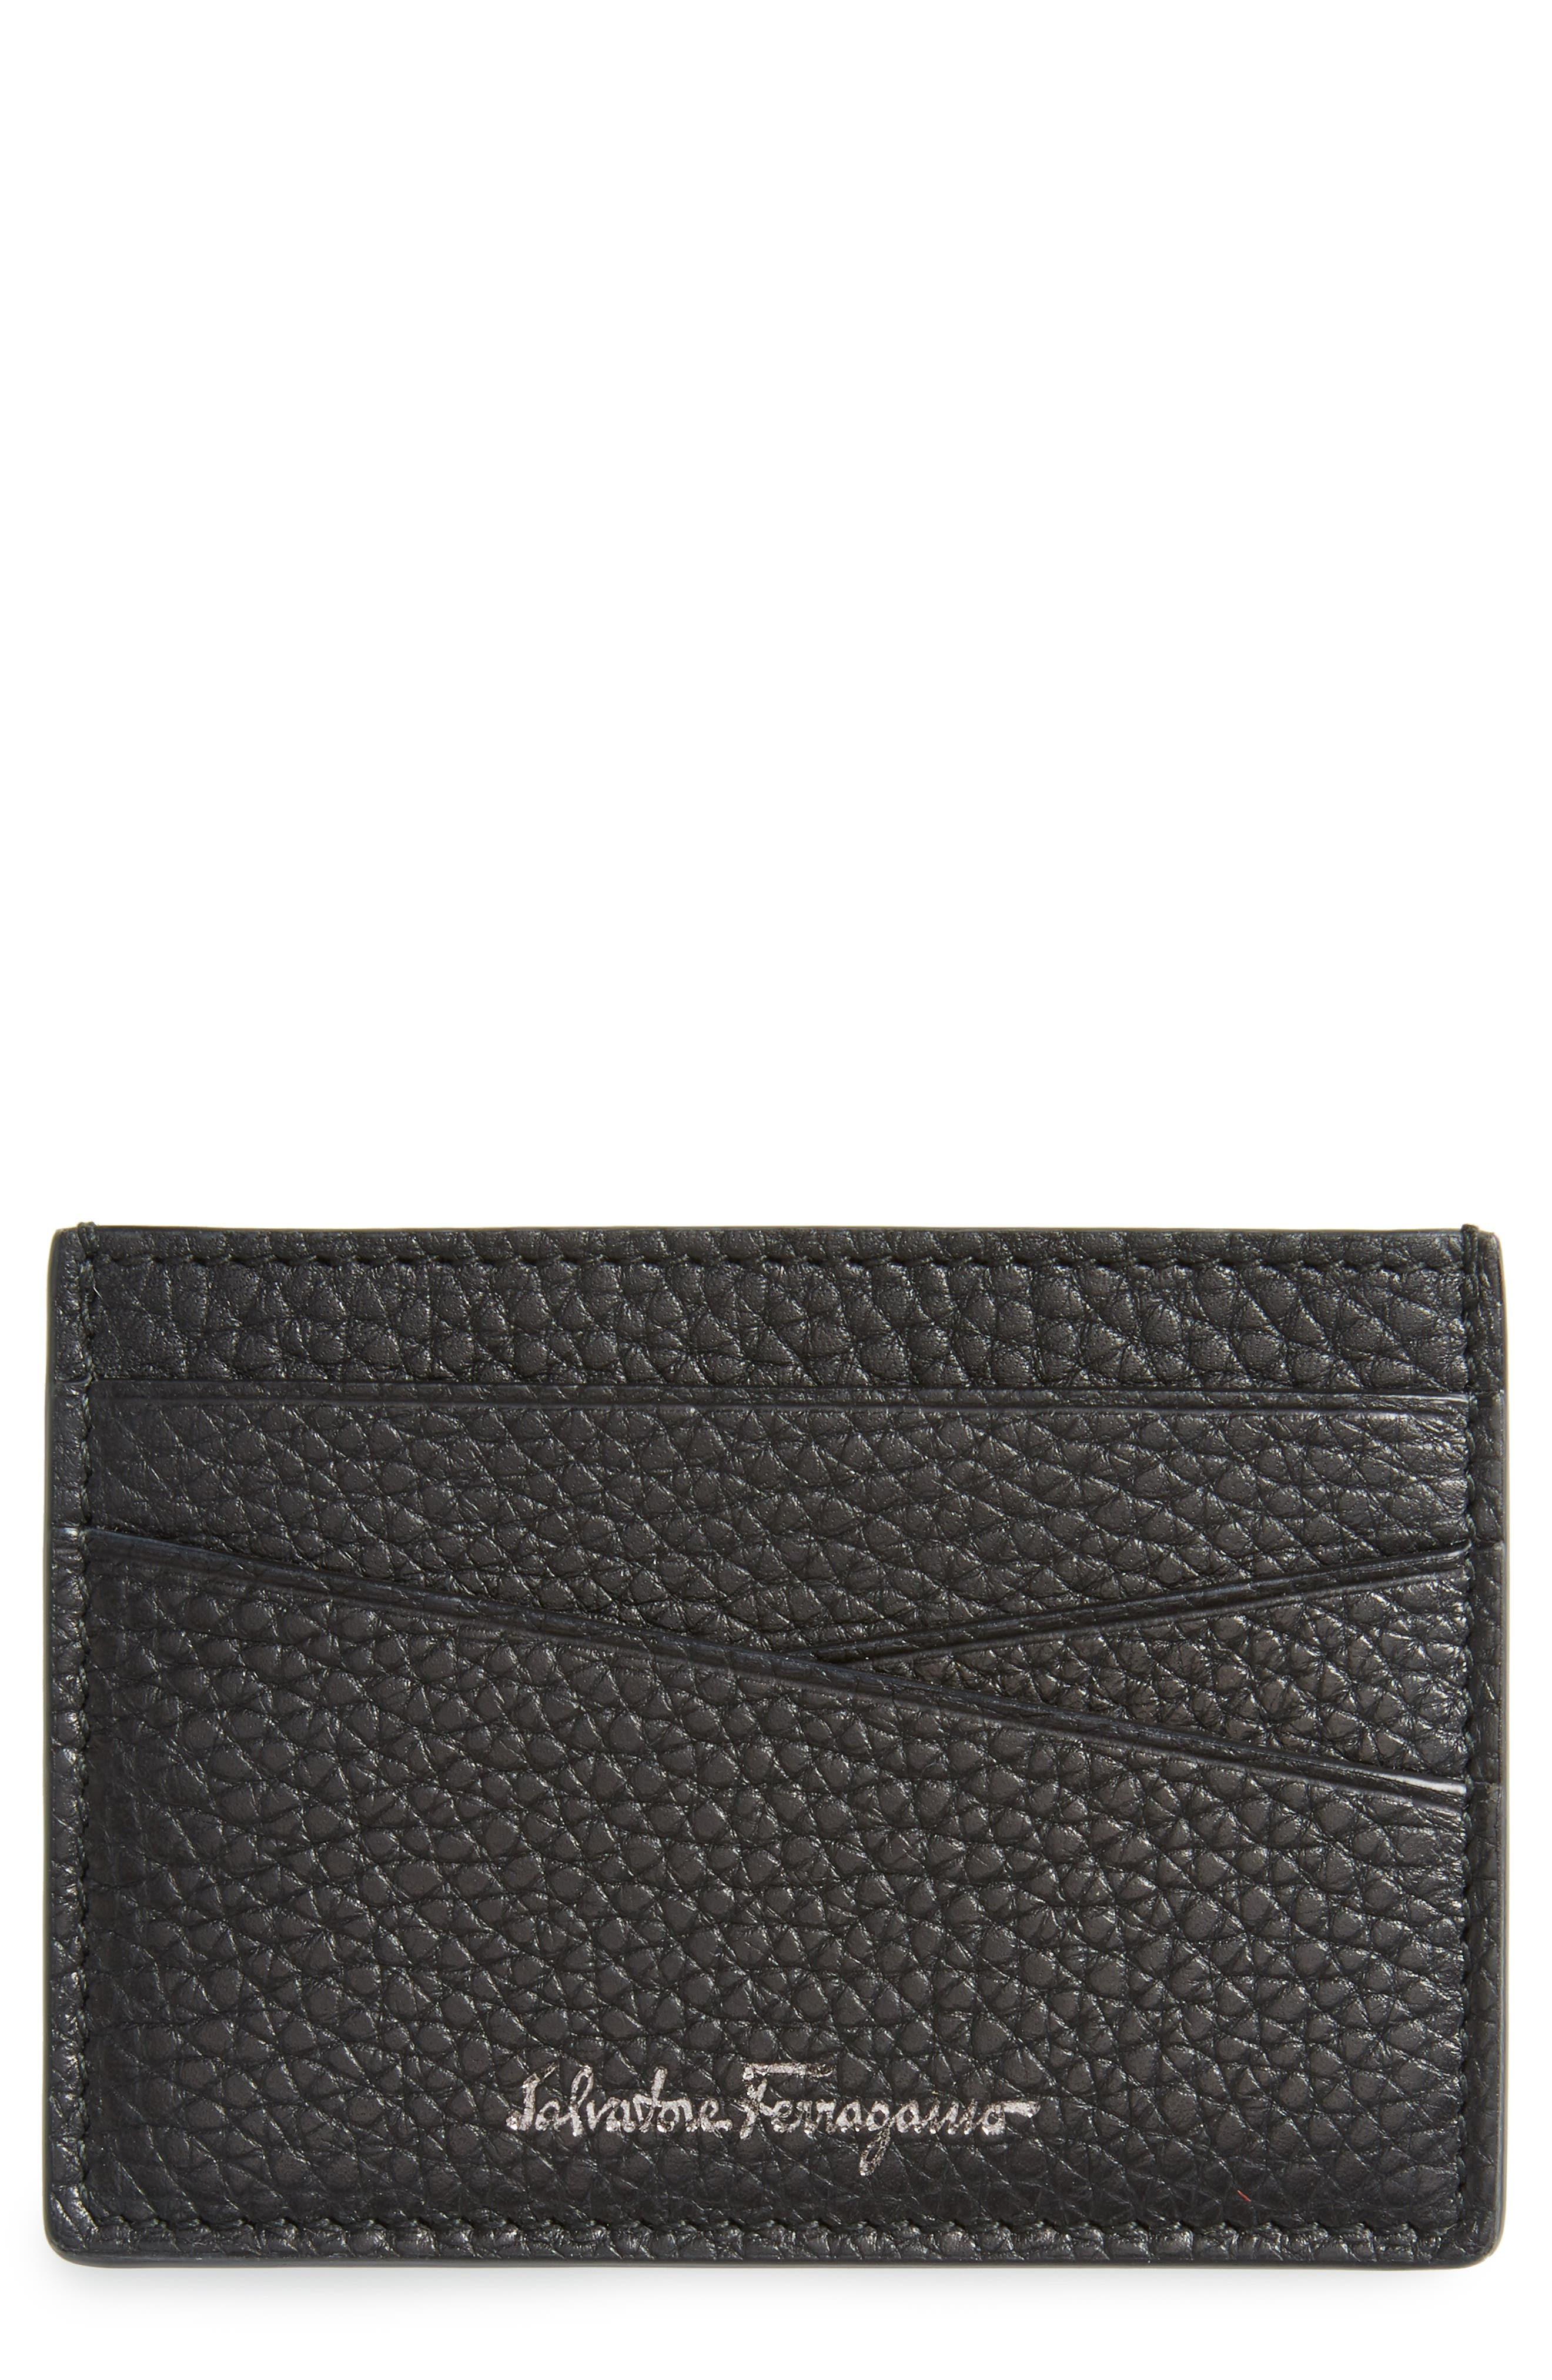 Firenze Leather Card Case,                             Main thumbnail 1, color,                             Black